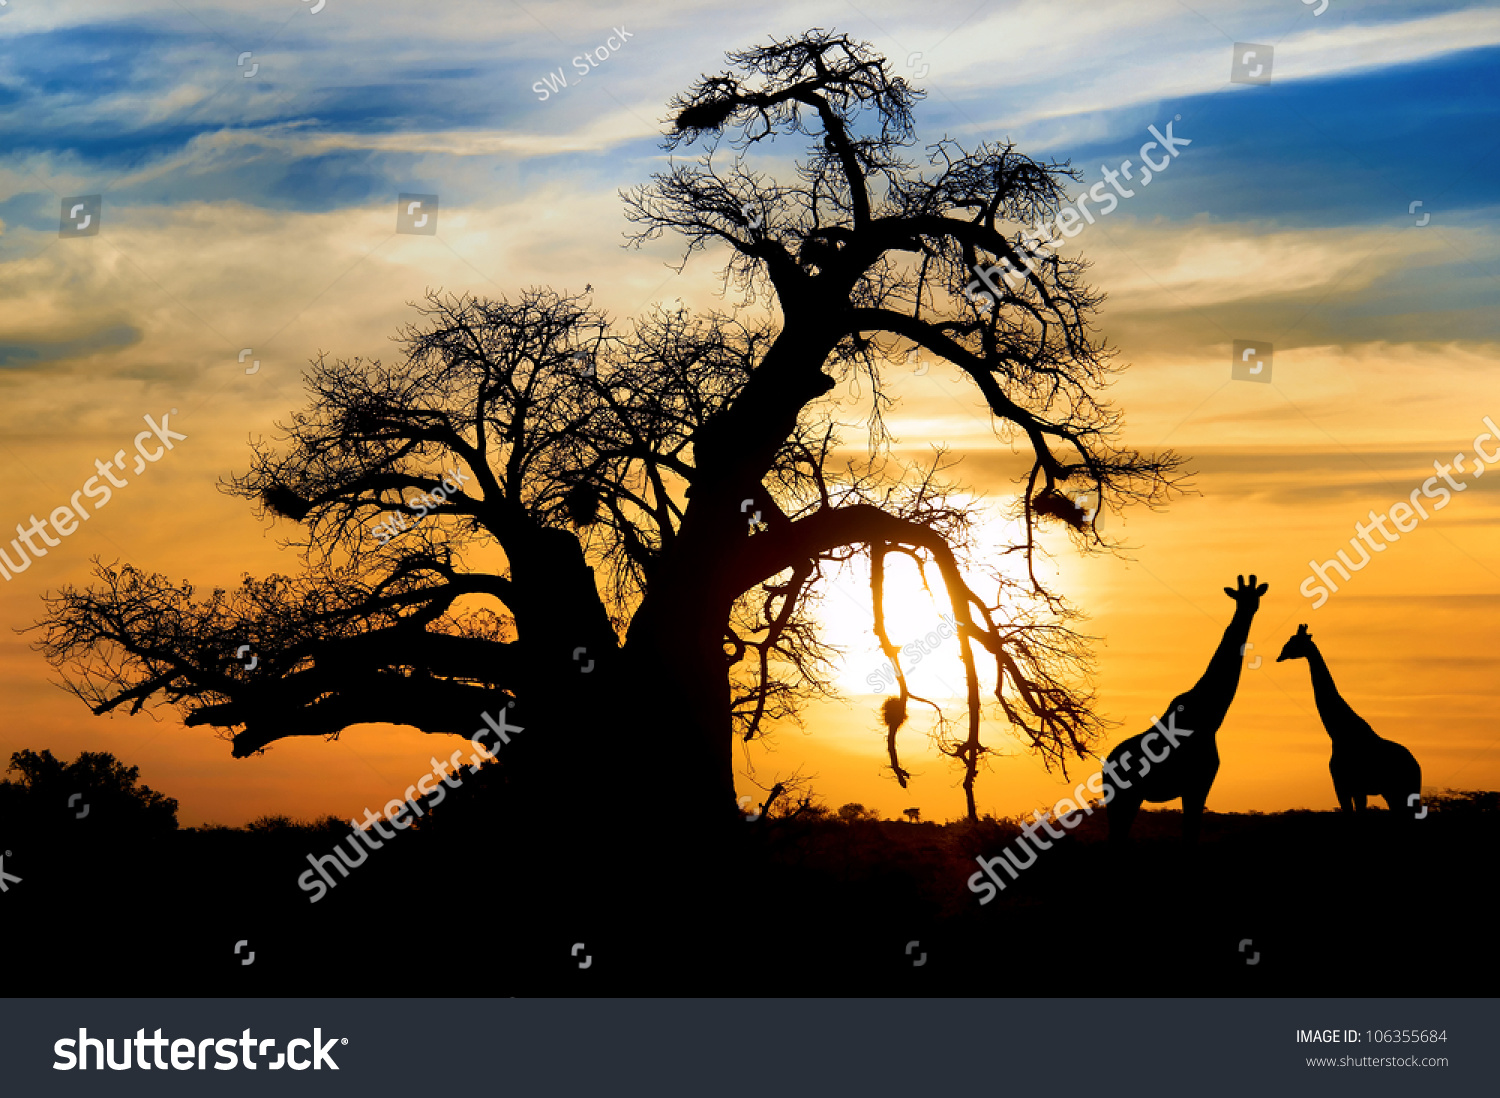 Spectacular sunset with baobab and giraffe on african savannah #106355684